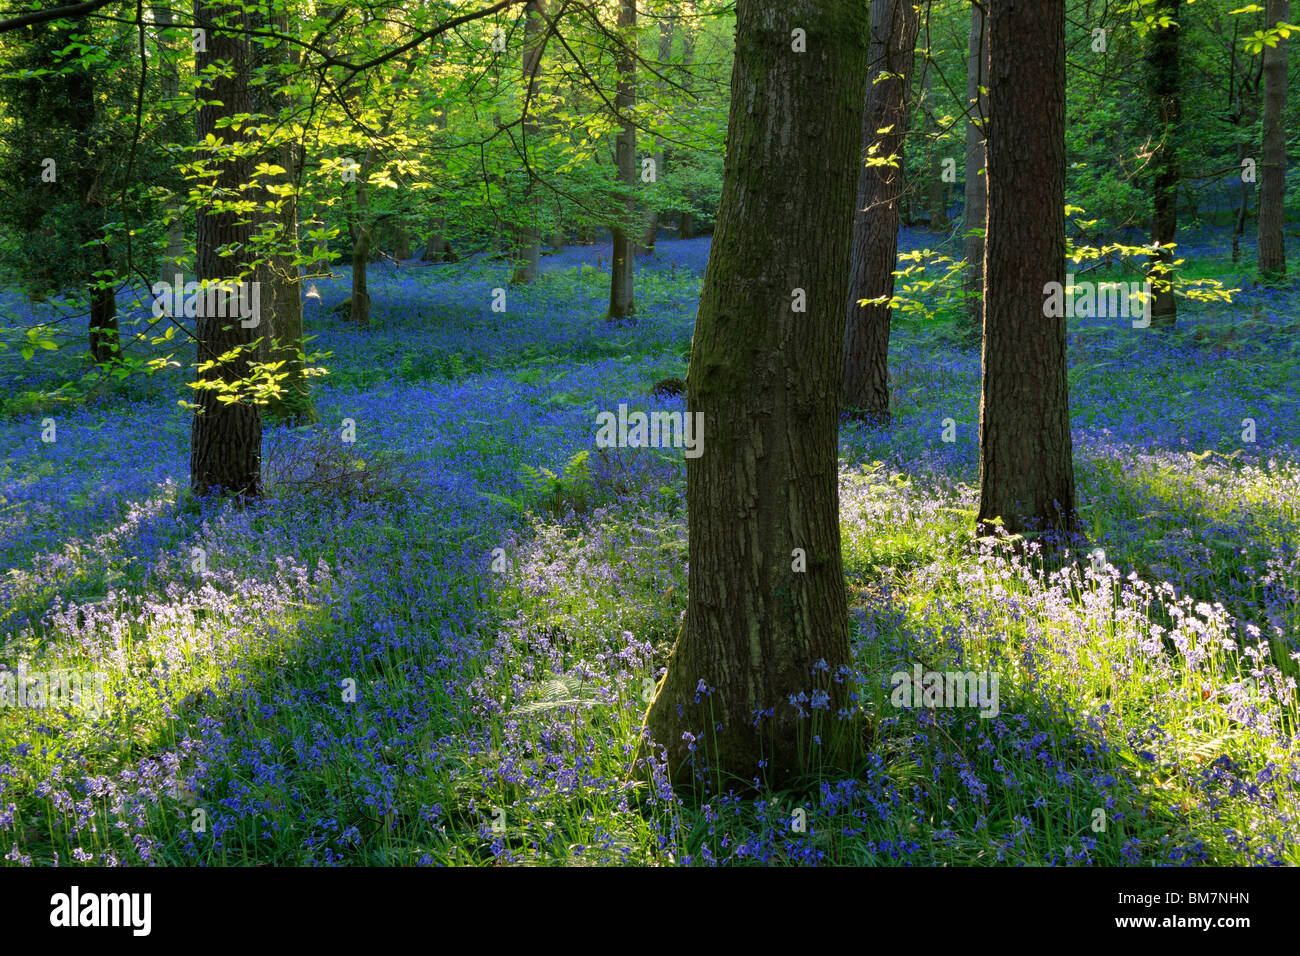 Classic carpet of English Bluebells on the trail between Soudley and Blakeney in the Forest of Dean, Gloucestershire, UK Stock Photo